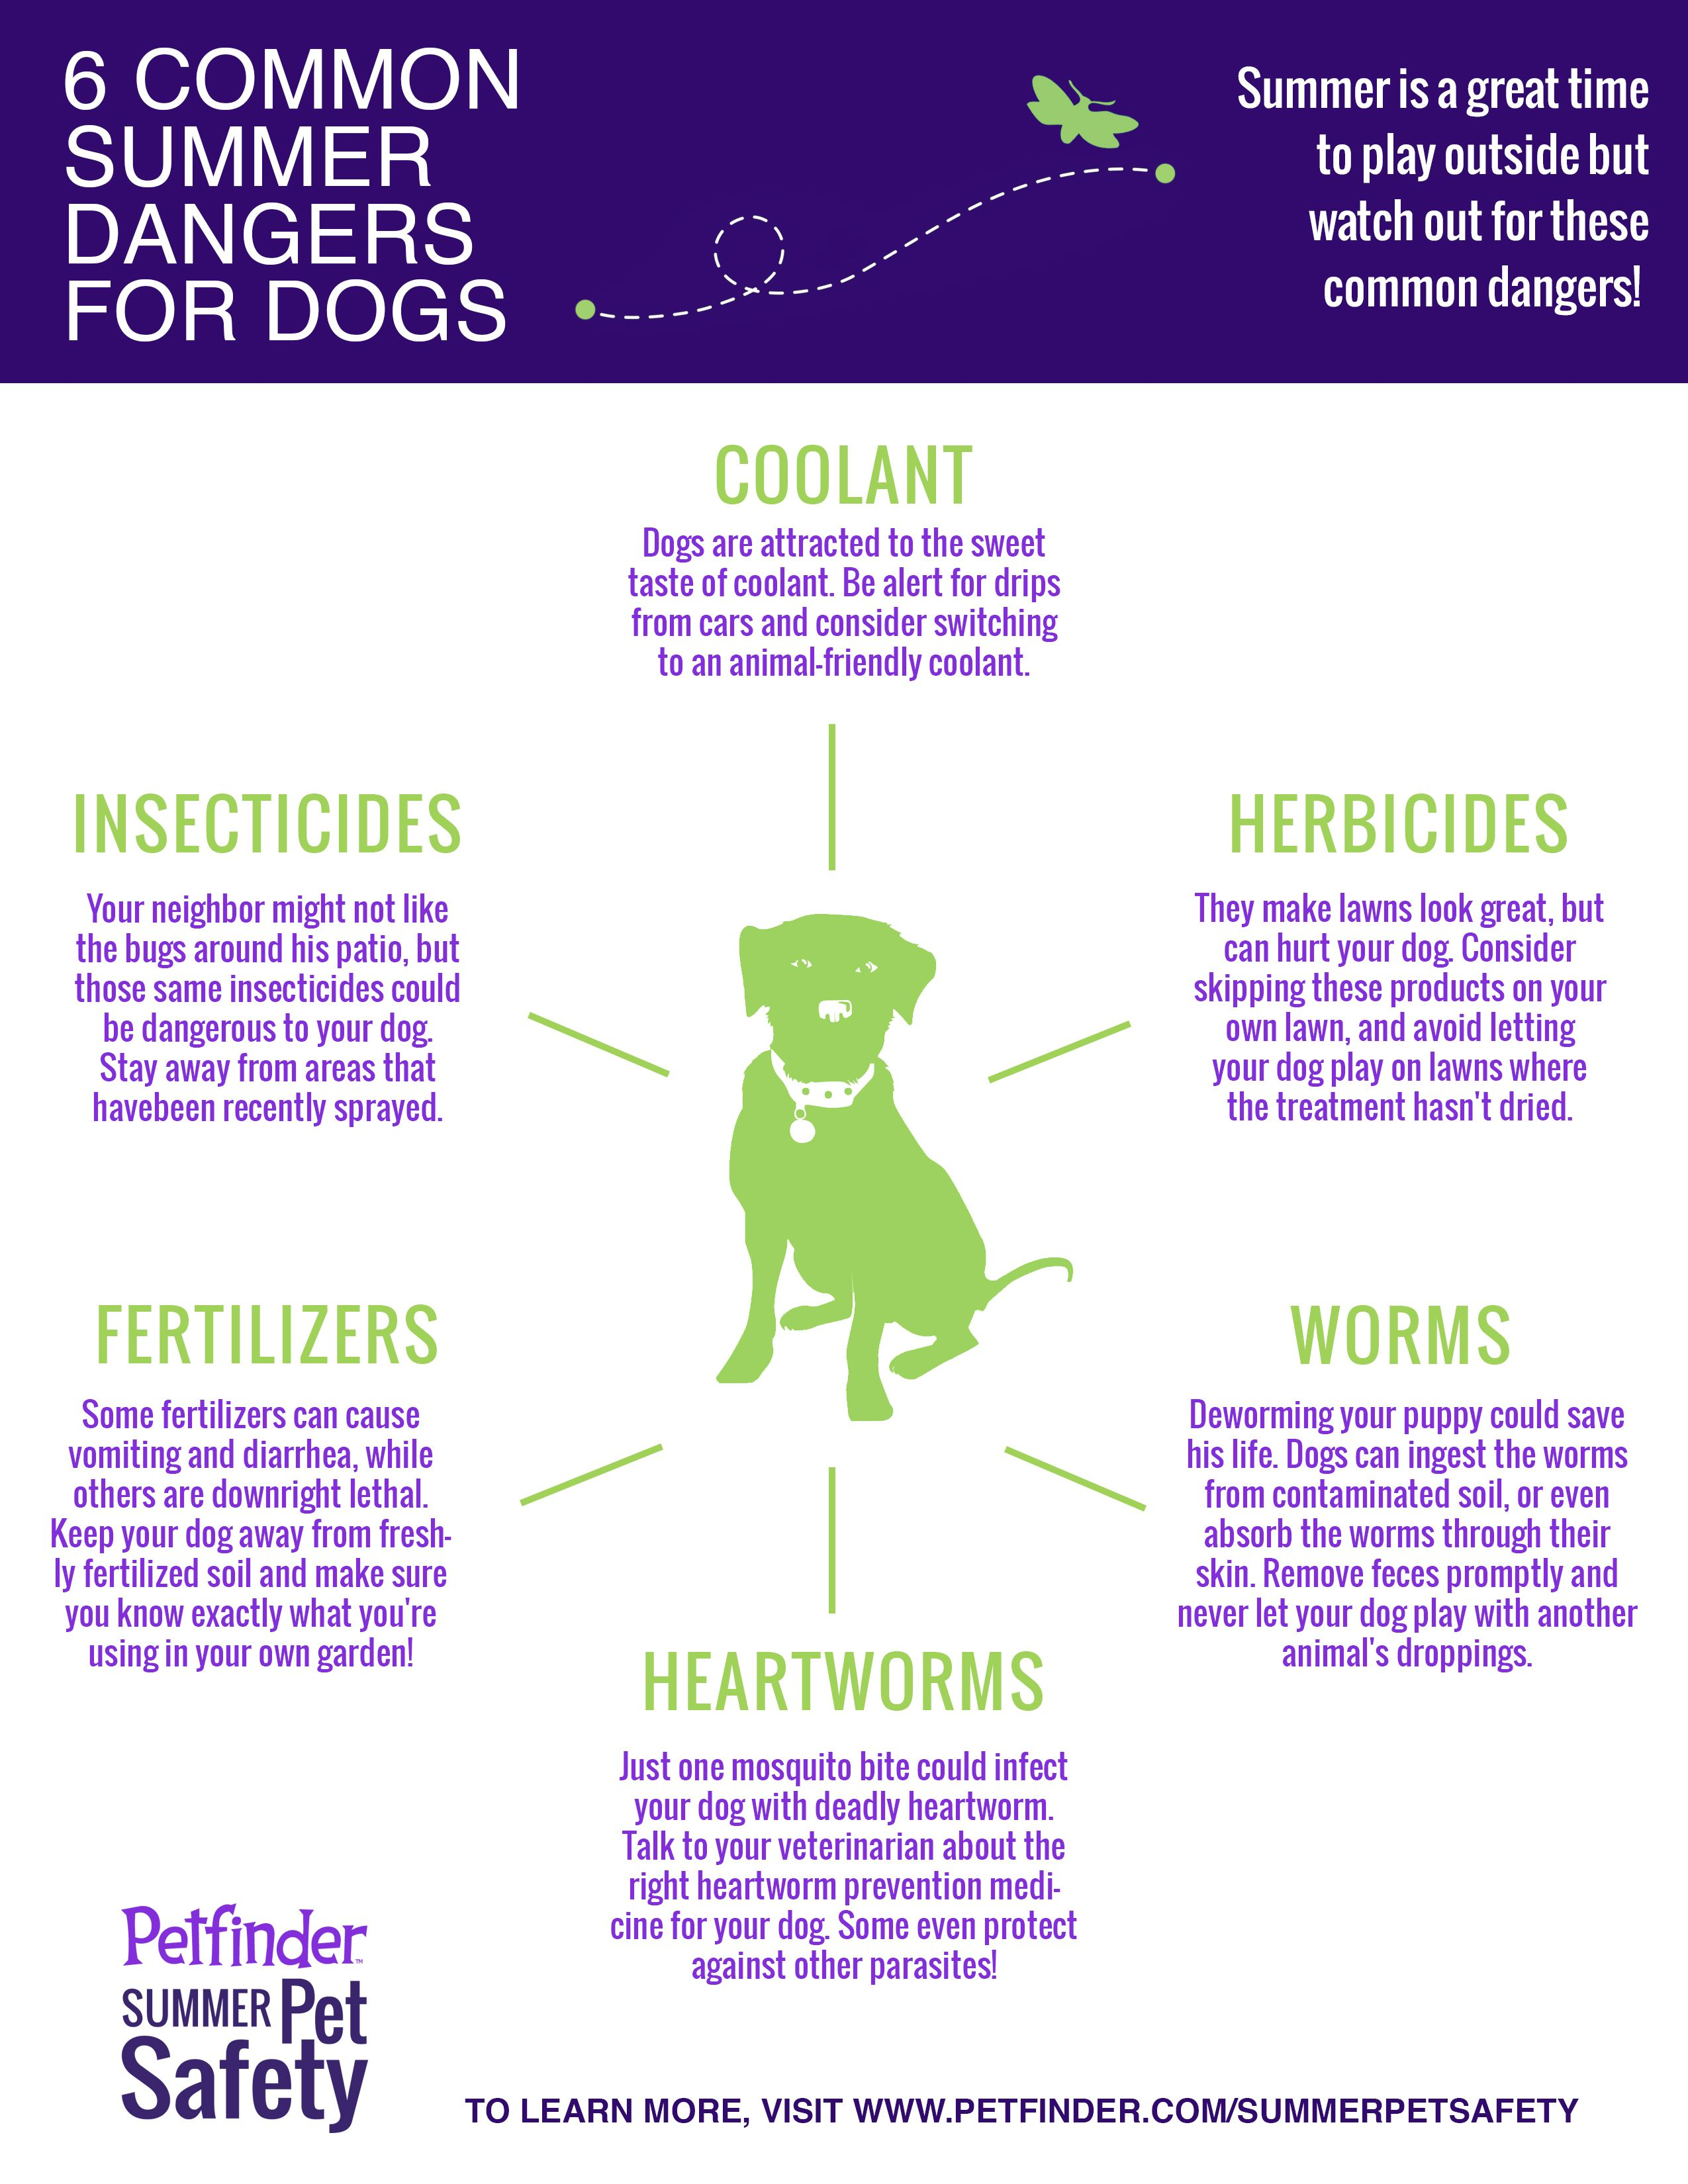 6 MustKnow Summer Dangers for Dogs Pet safe